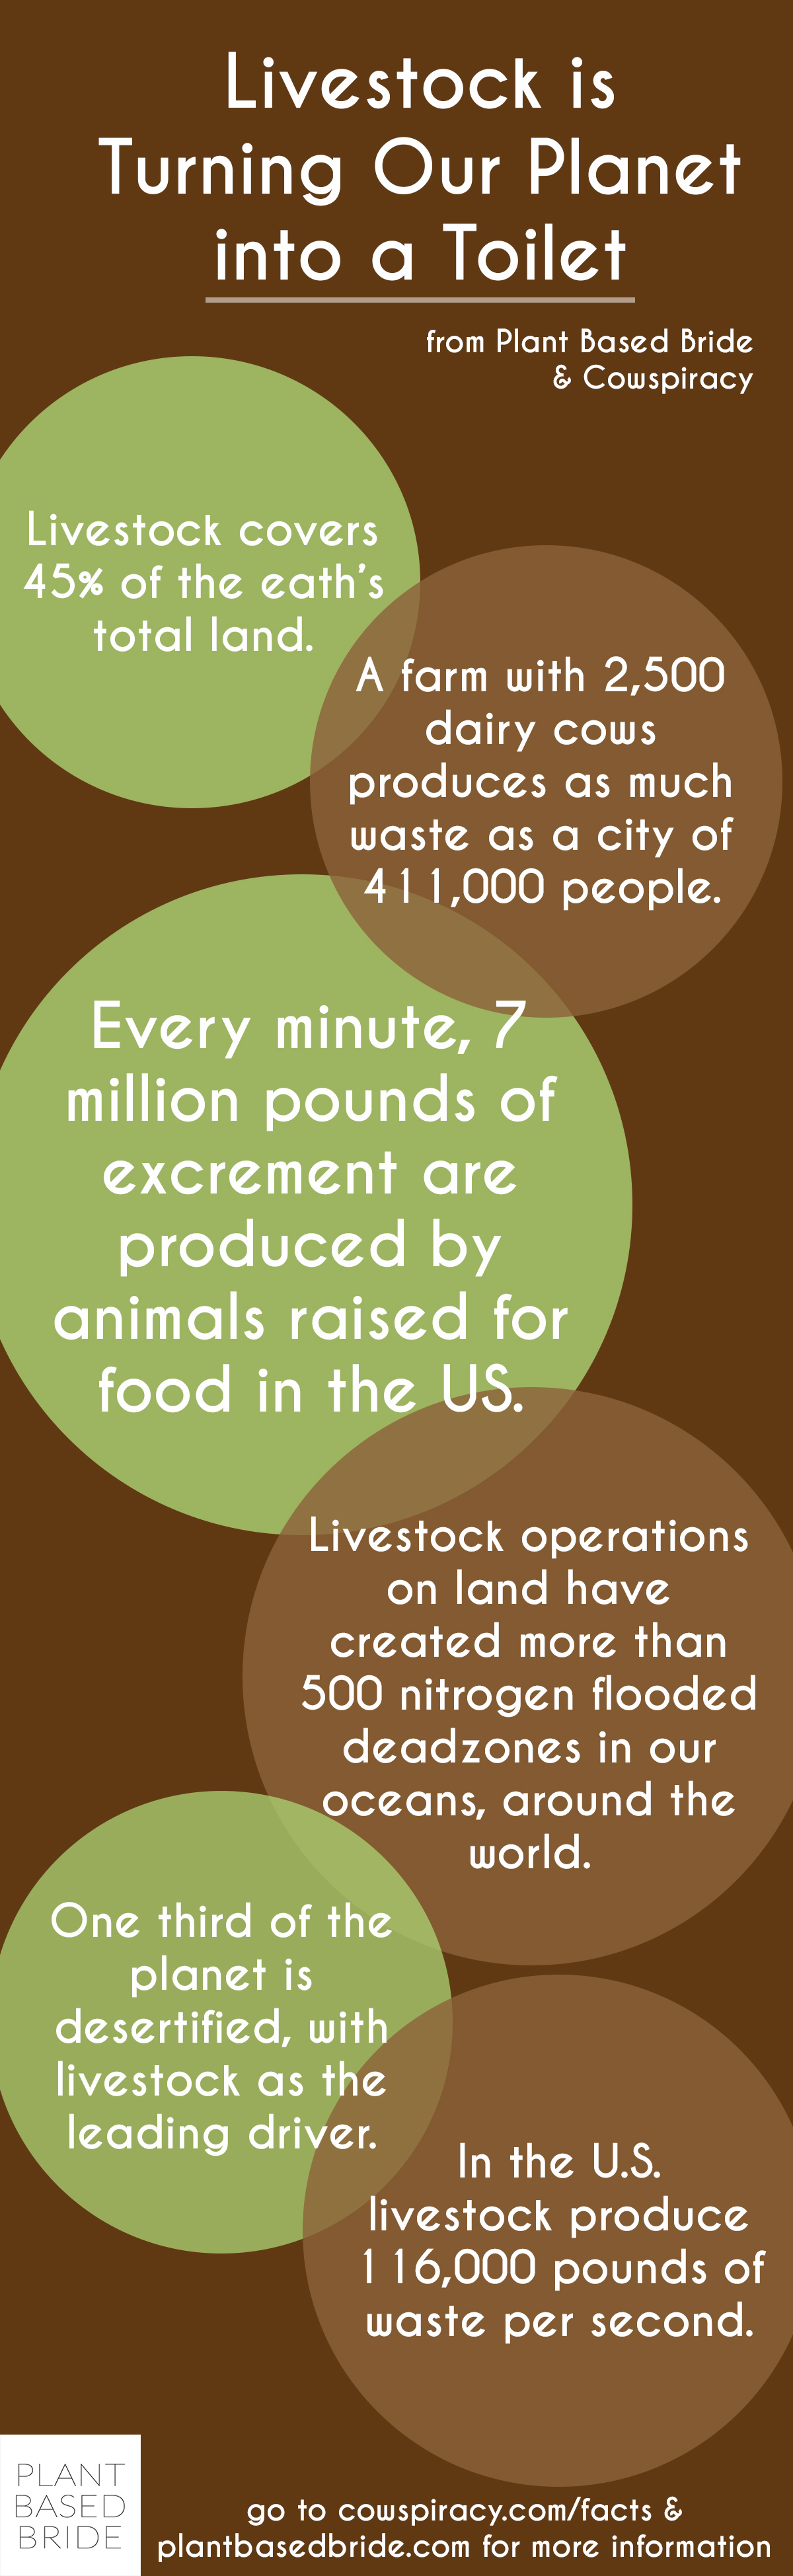 Animal agriculture is turning our planet into a toilet.  Let's save our planet by reducing our meat and dairy consumption today!  Facts from Cowspiracy, graphic by Plant Based Bride.